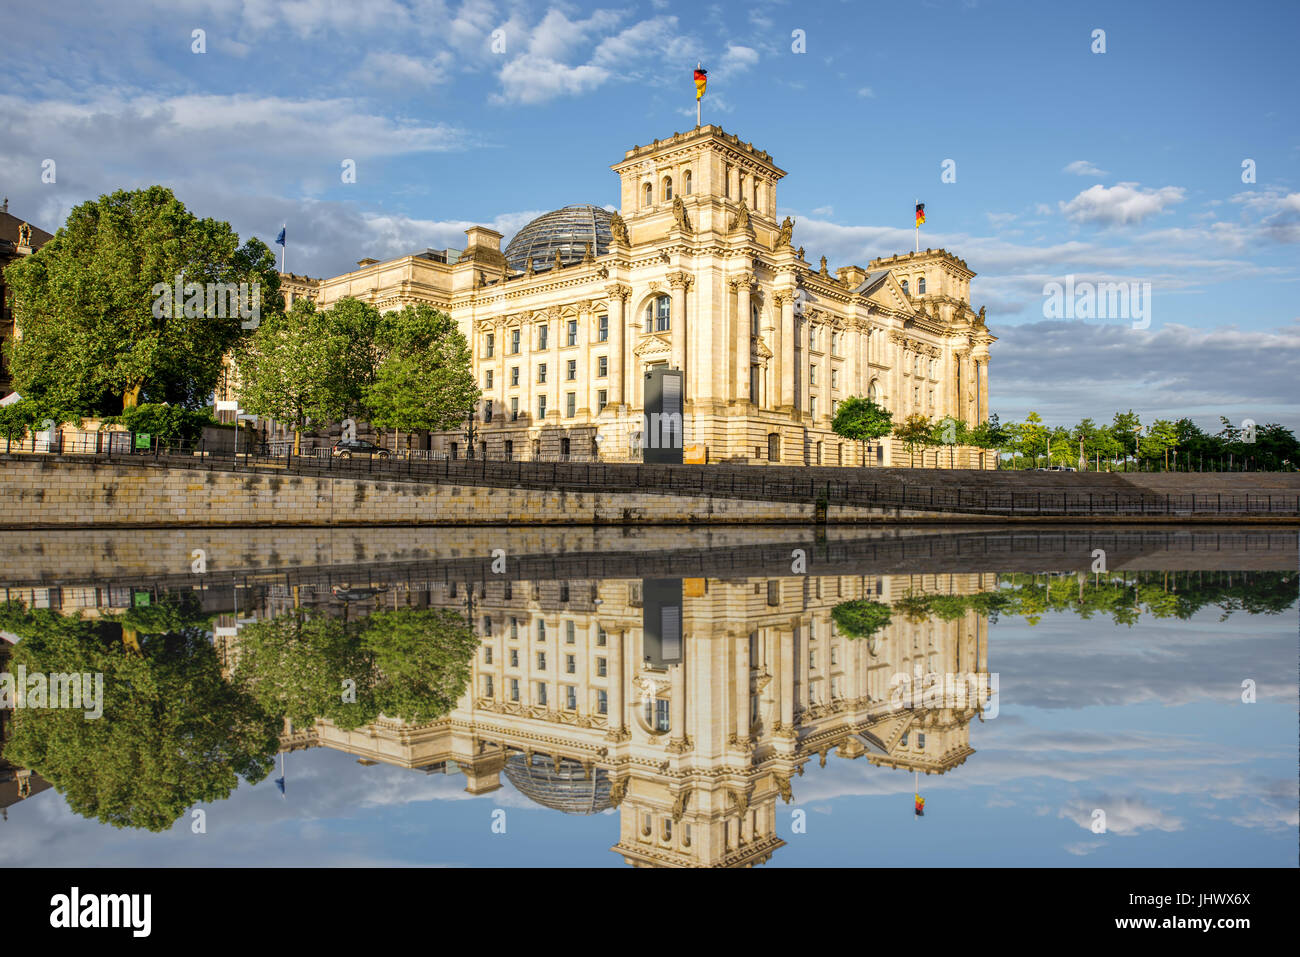 Berlin city view - Stock Image